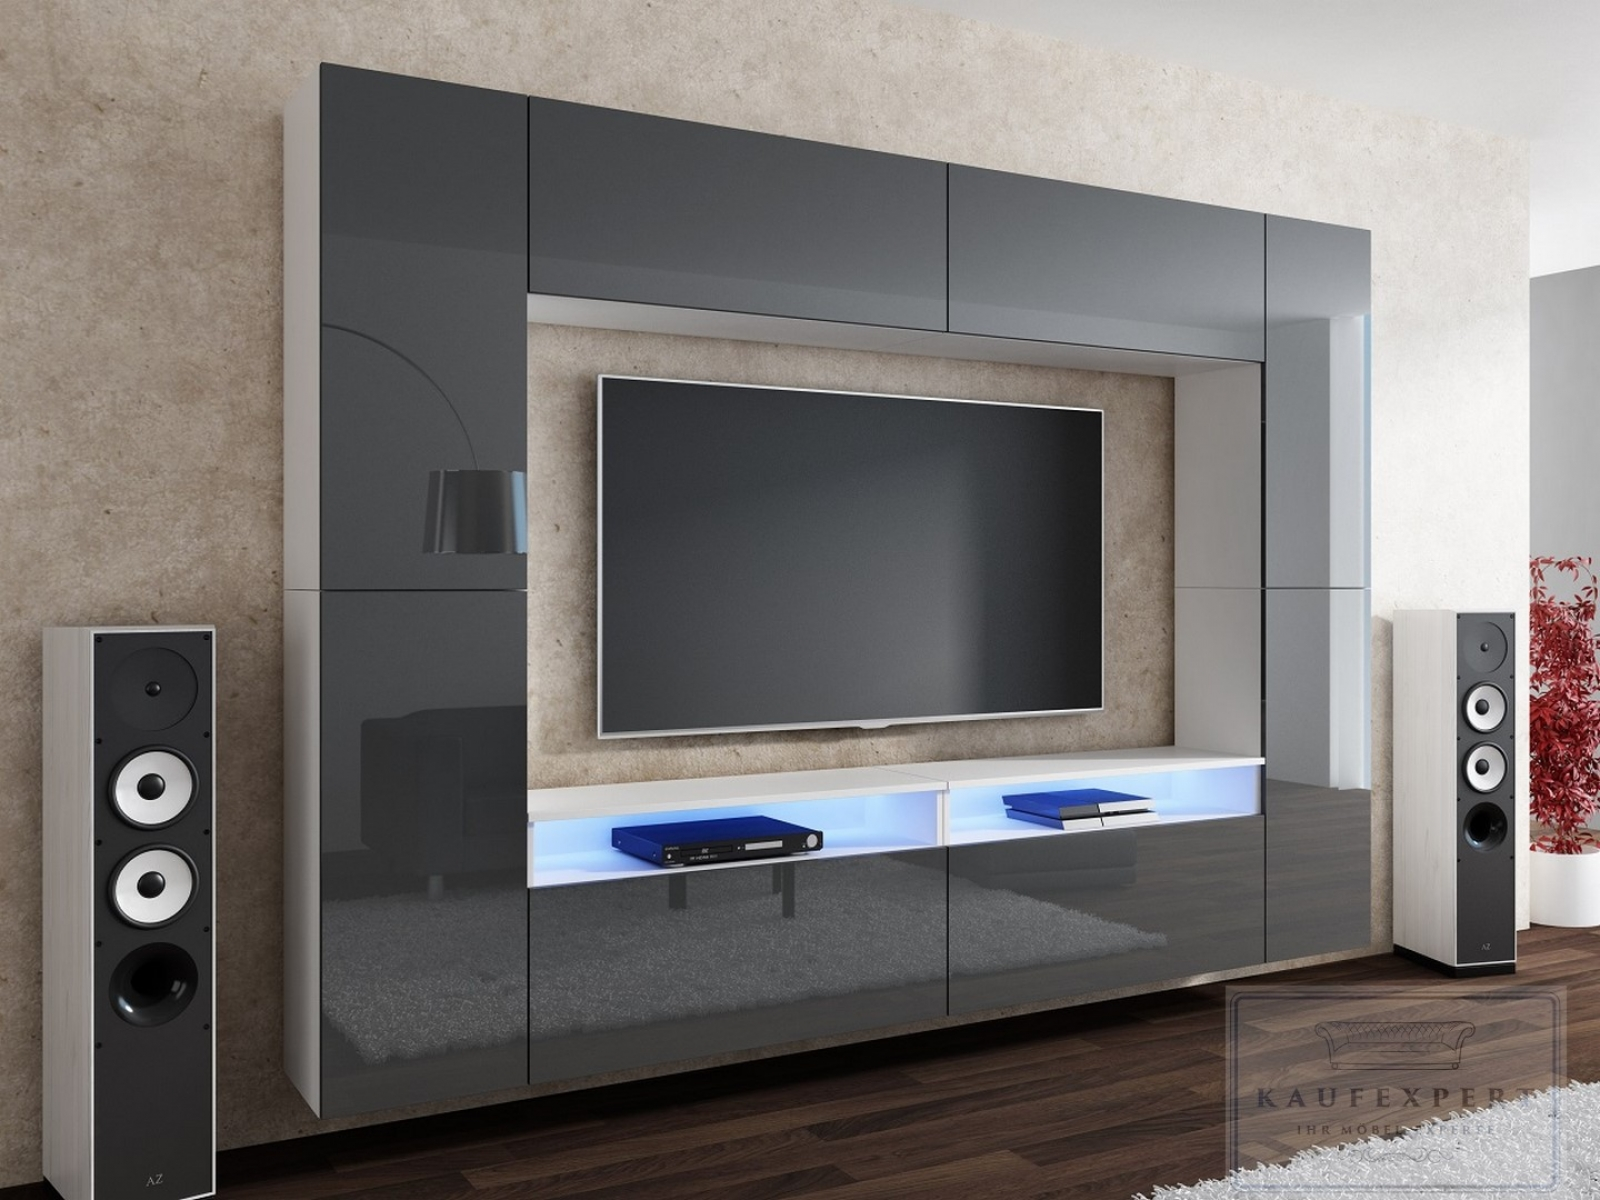 kaufexpert wohnwand cinema grau hochglanz wei mediawand medienwand design modern led. Black Bedroom Furniture Sets. Home Design Ideas